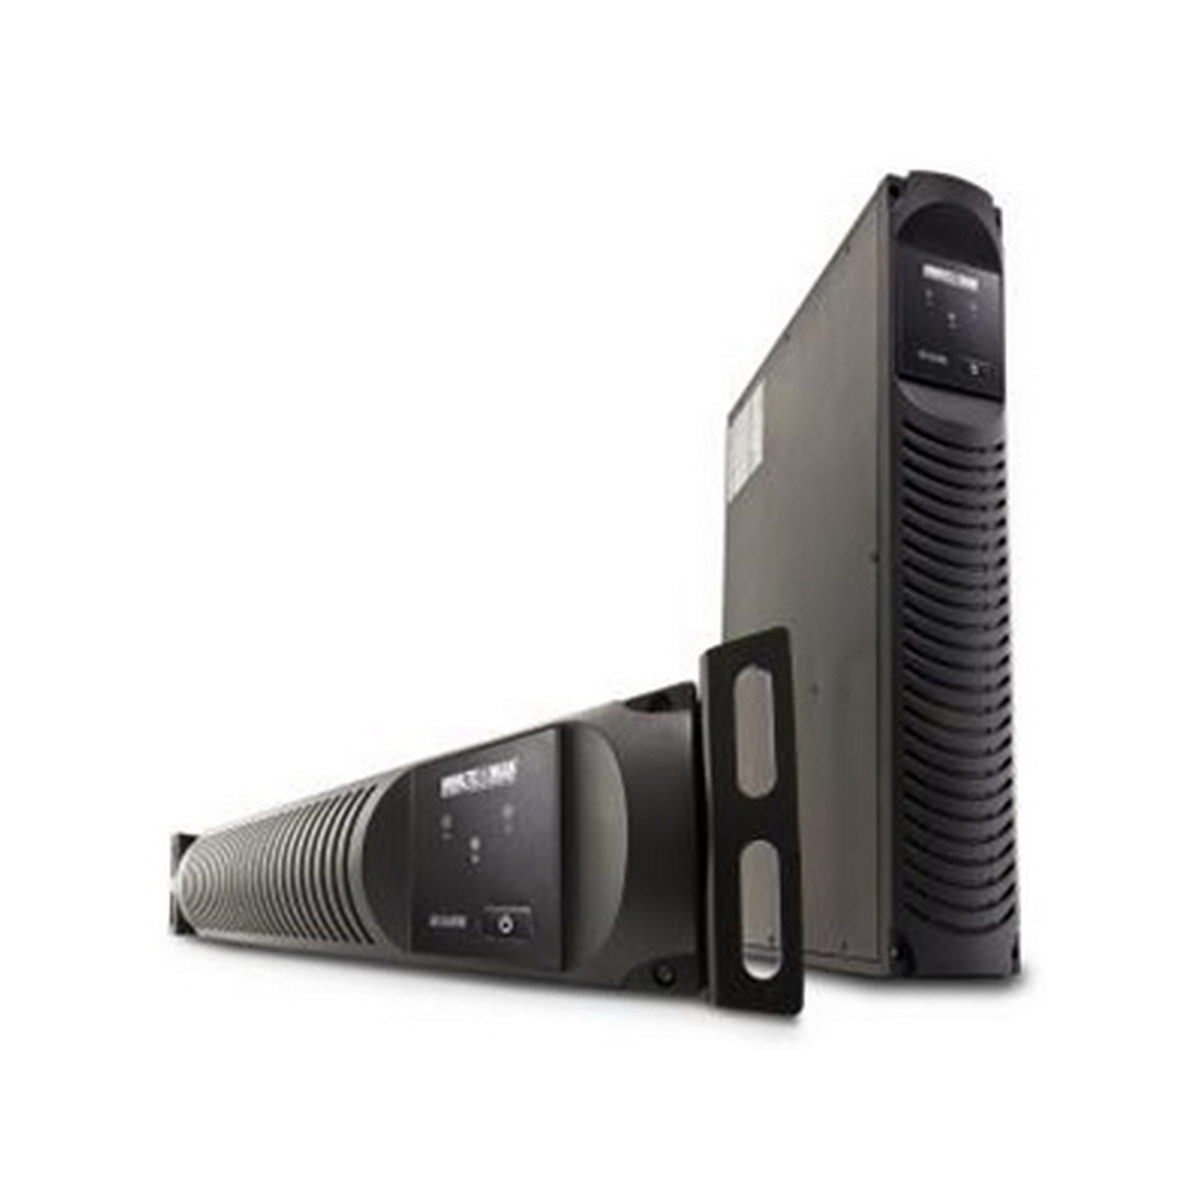 1500VA Line Interactive, Rack Mount UPS, LED Display,RS-232, USB,